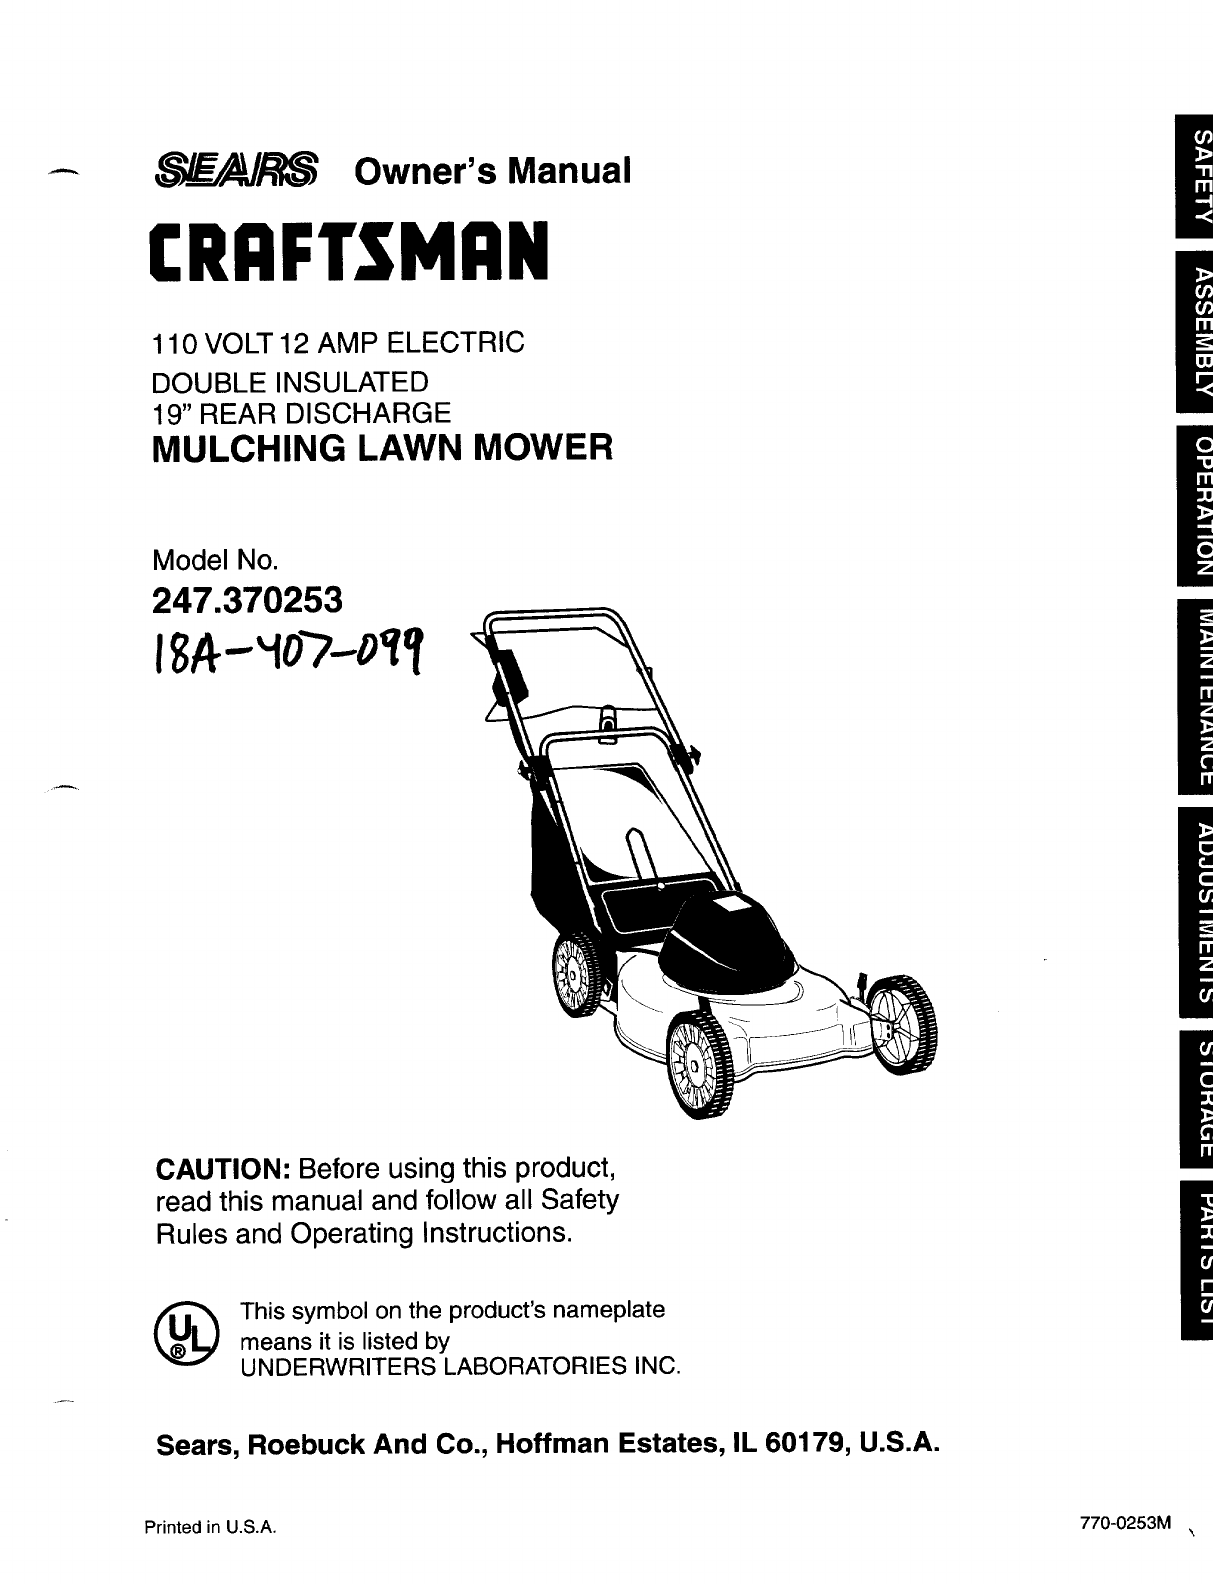 craftsman lawn mower 247 370253 user guide manualsonline com rh lawnandgarden manualsonline com manual for craftsman lawn tractor yt 45000 manual for lt1000 craftsman lawn tractor